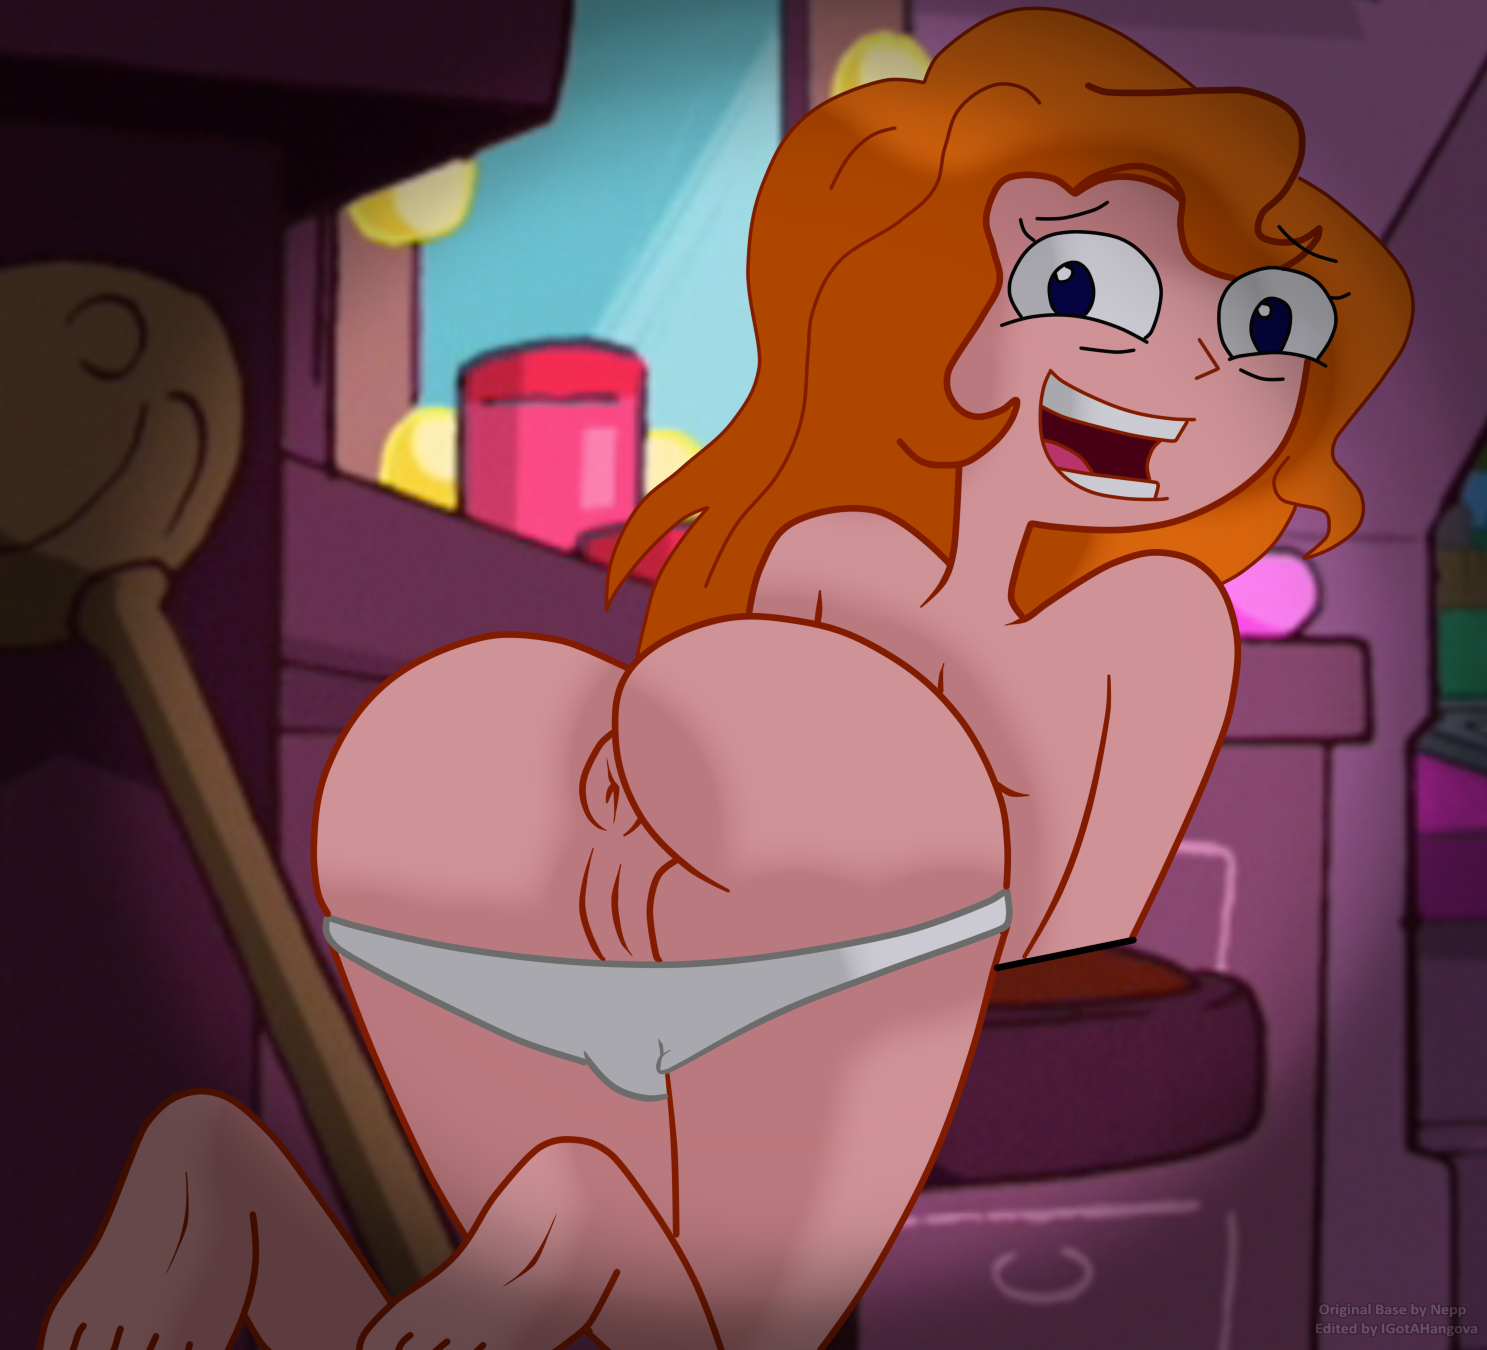 Candace porno xxx, what makes a girl pussy fart